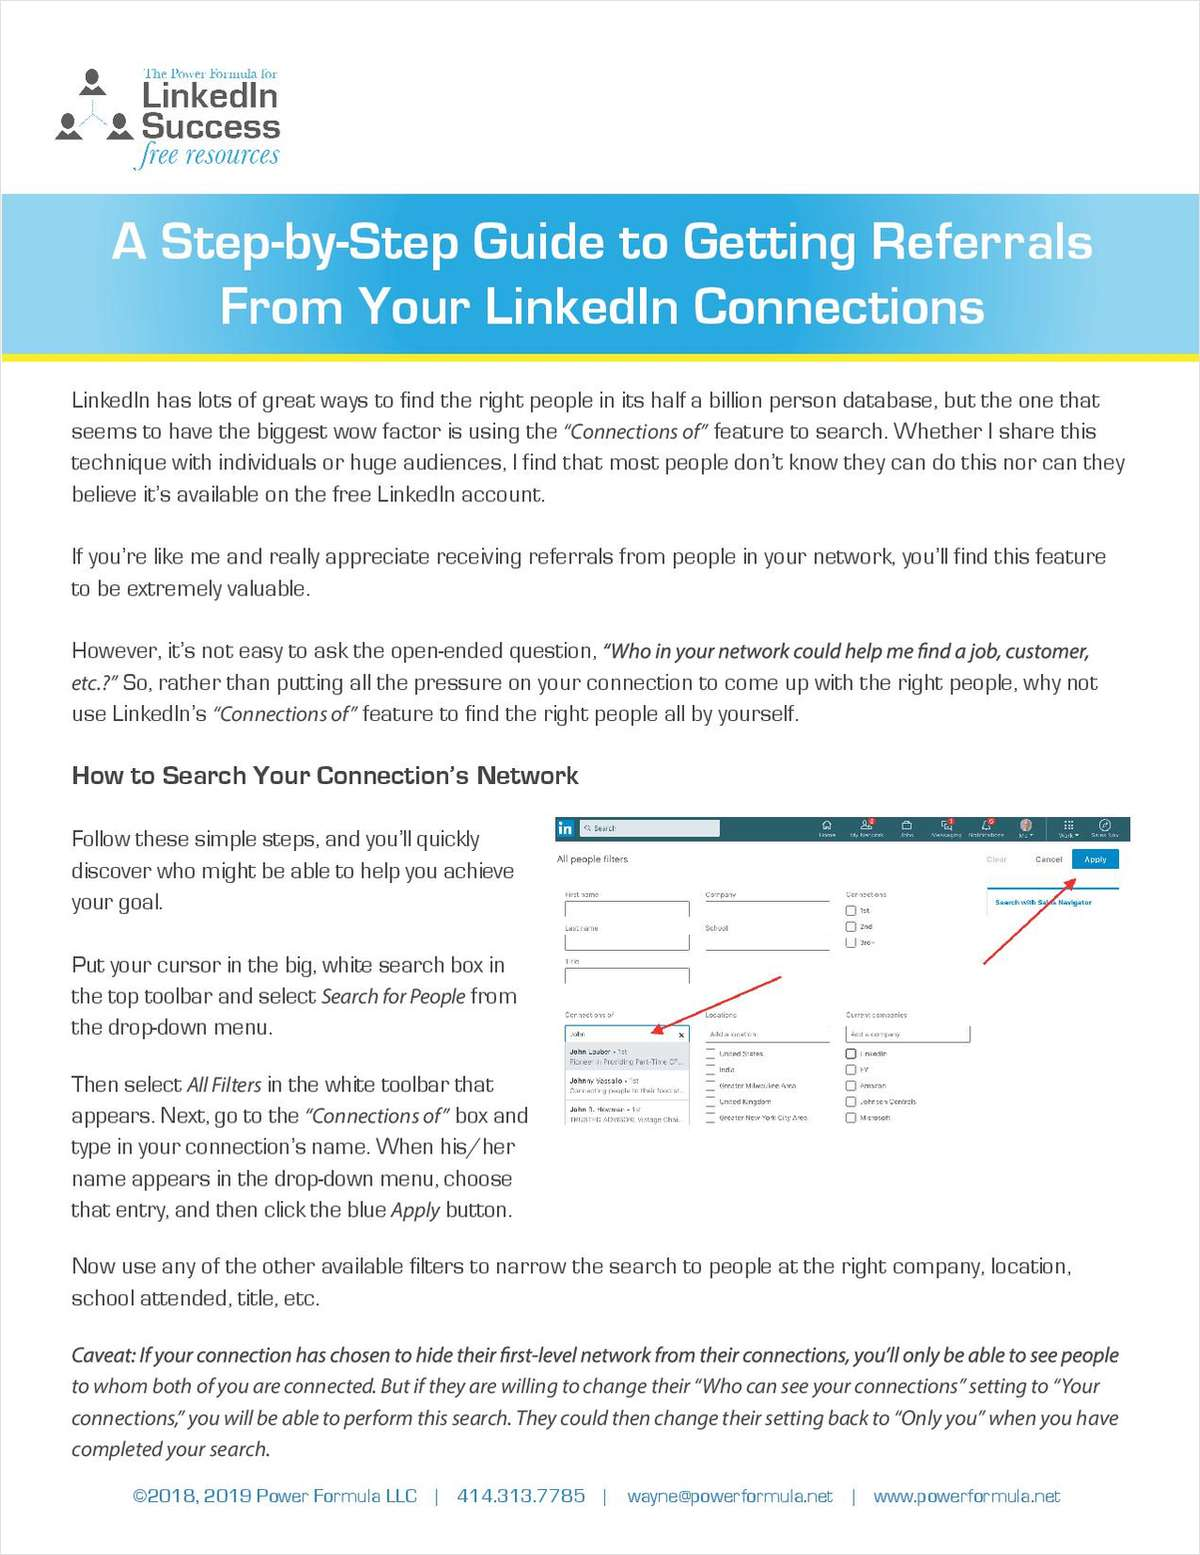 A Step-by-Step Guide to Getting Referrals From Your LinkedIn Connections